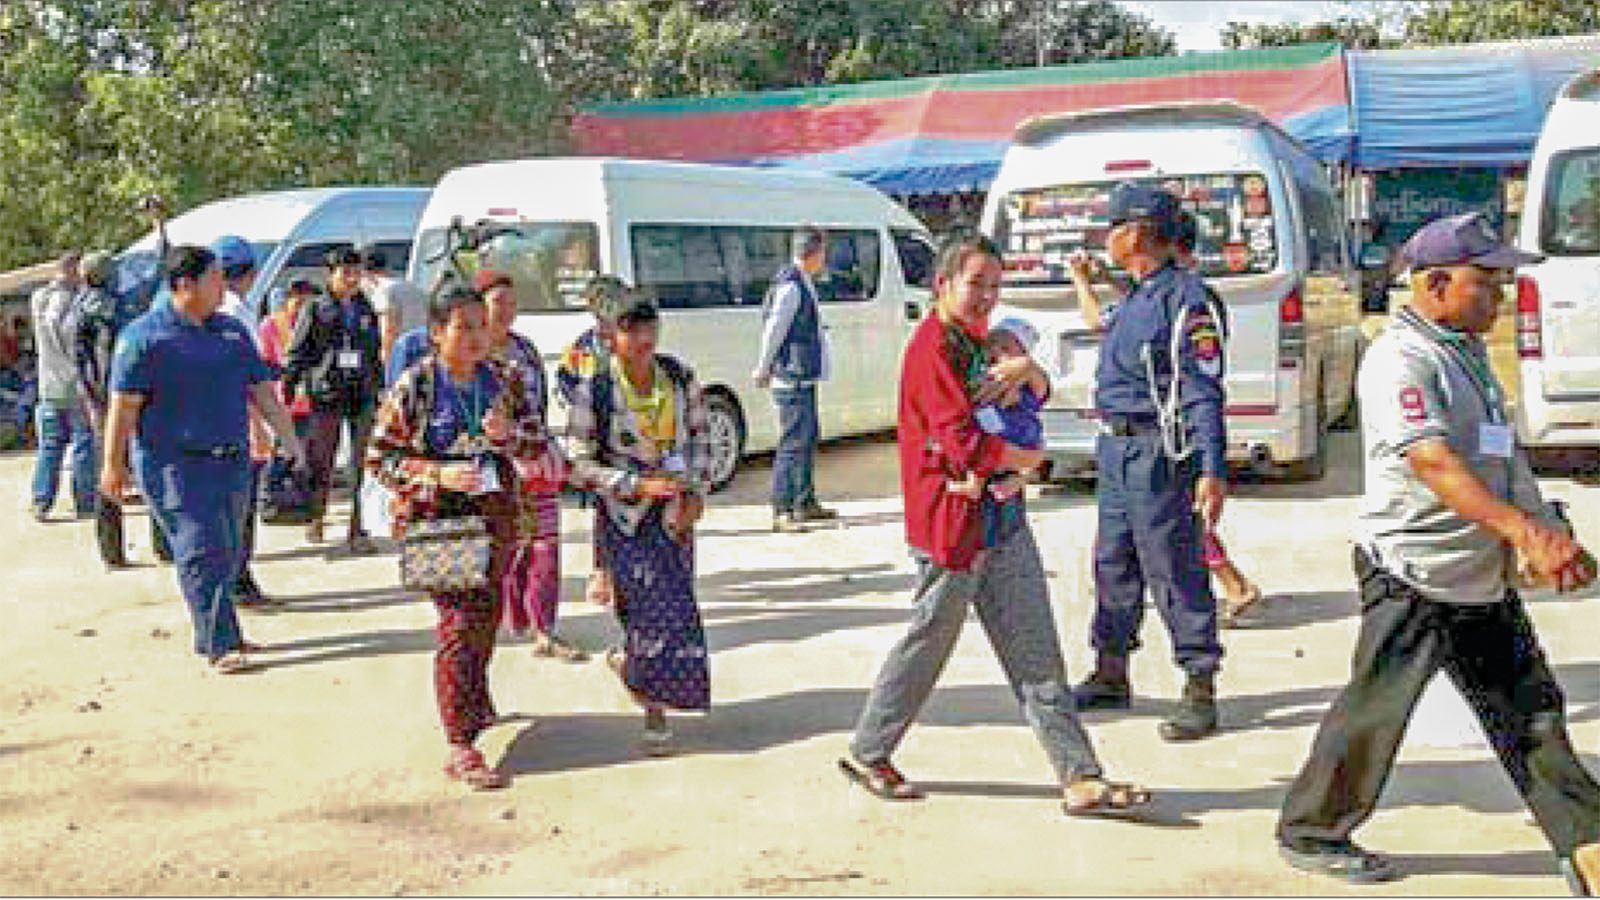 Returnees are warmly welcomed by Myanmar officials.